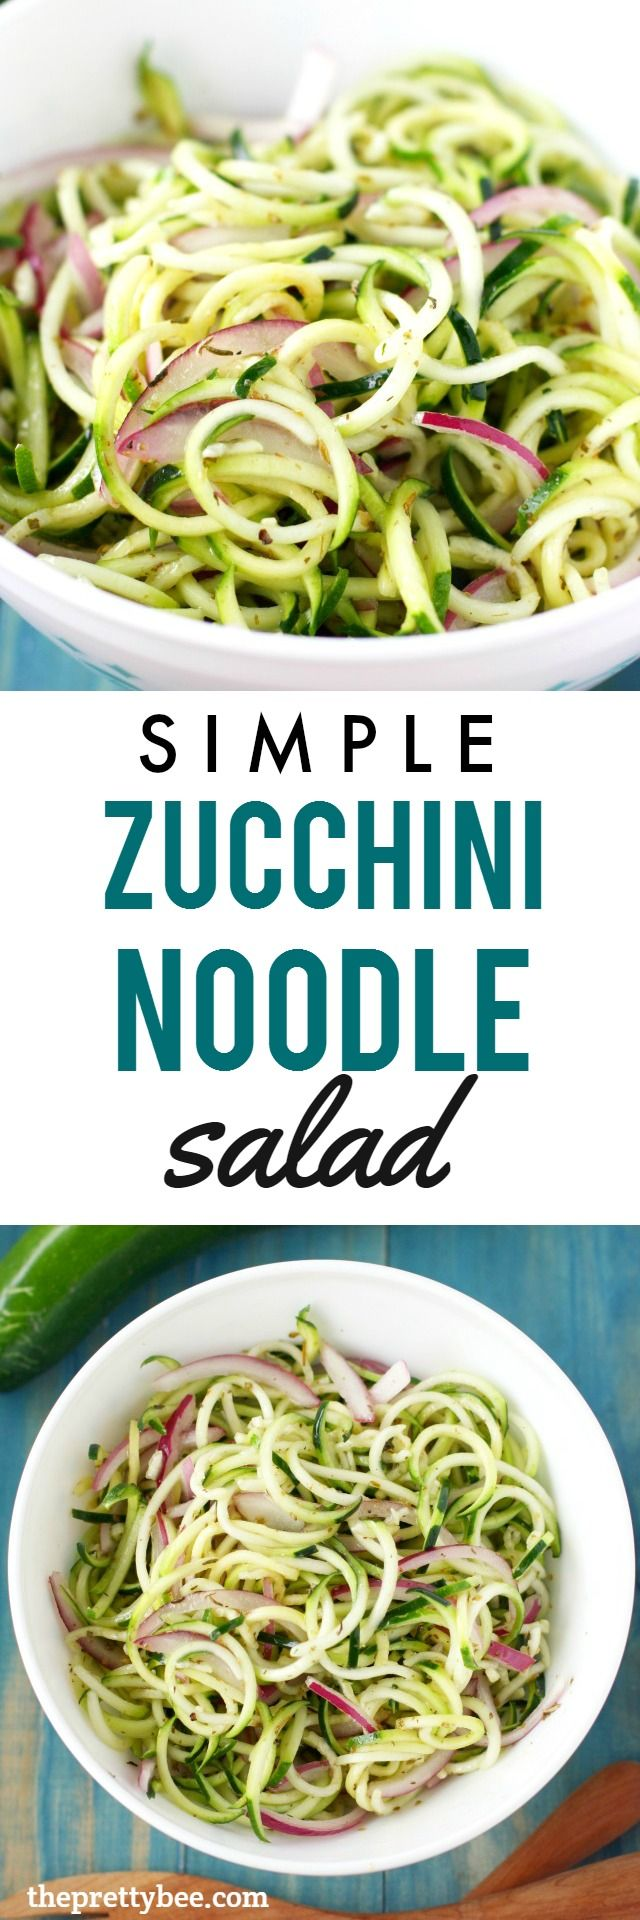 A fresh summer salad made with zucchini noodles and red onion! Delicious and healthy!